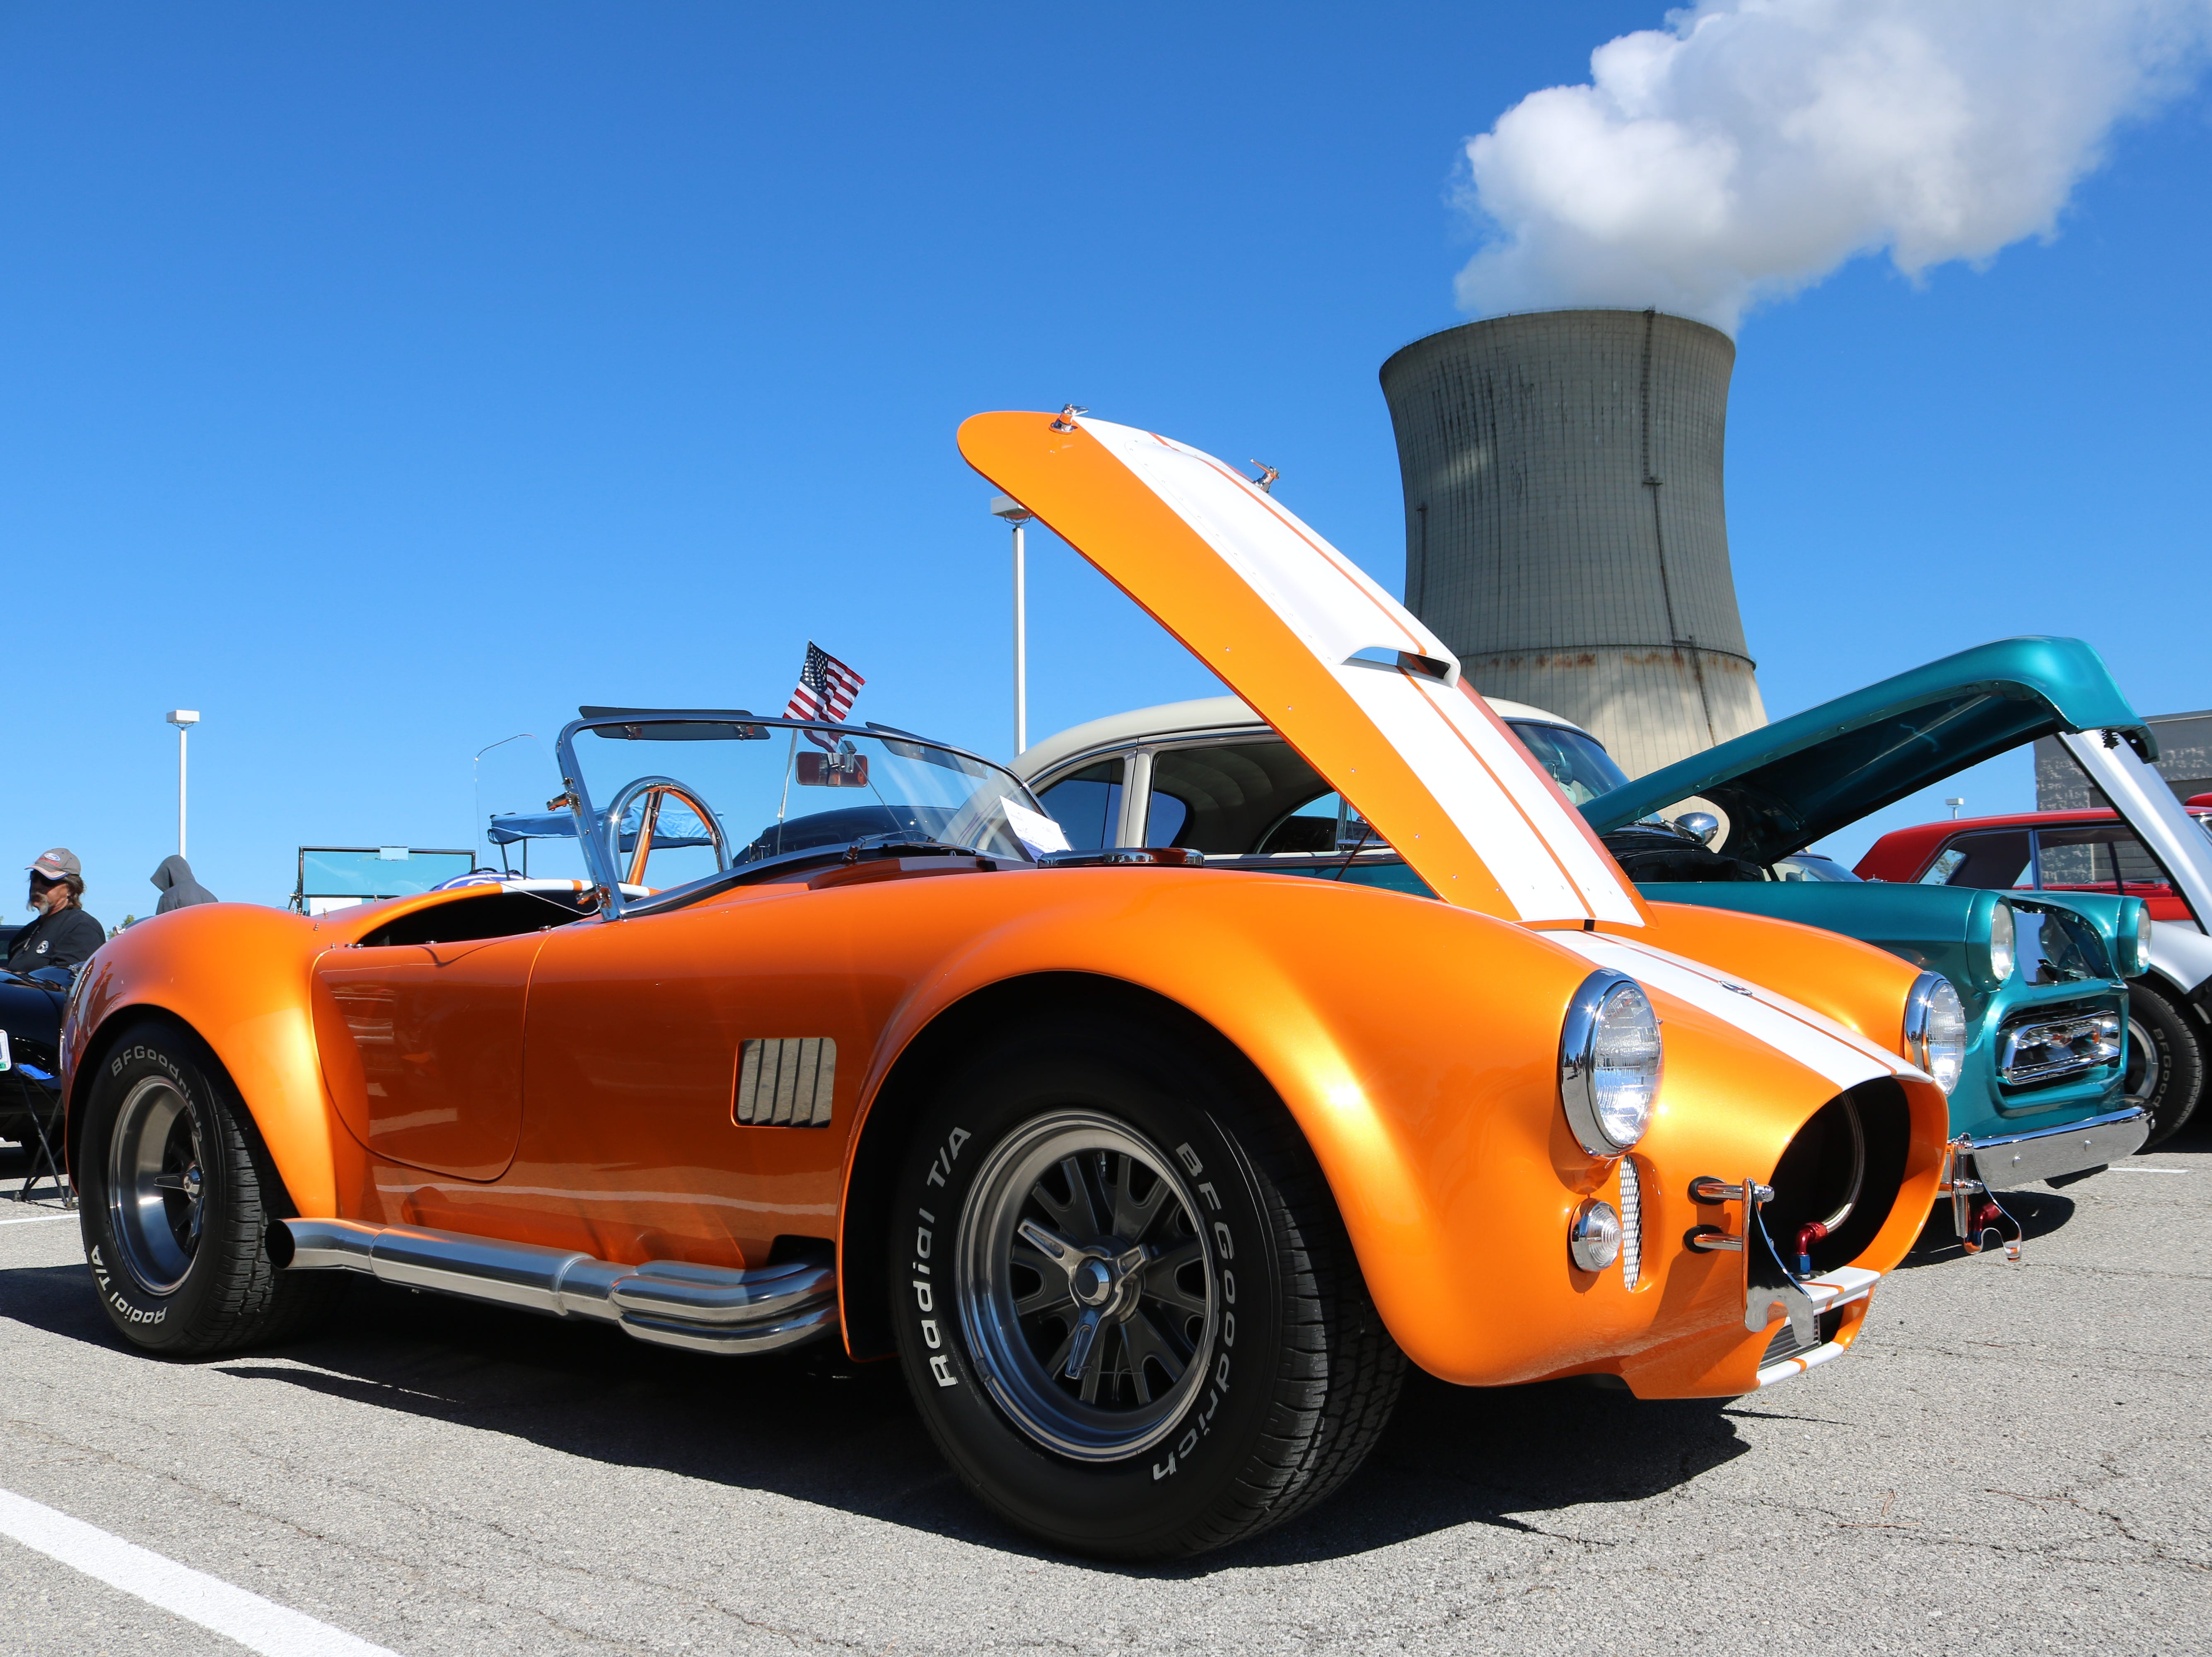 This 1965 Superformance Cobra stood out among the crowd at the Davis-Besse Cruisin' To The Future Car Show on Saturday.